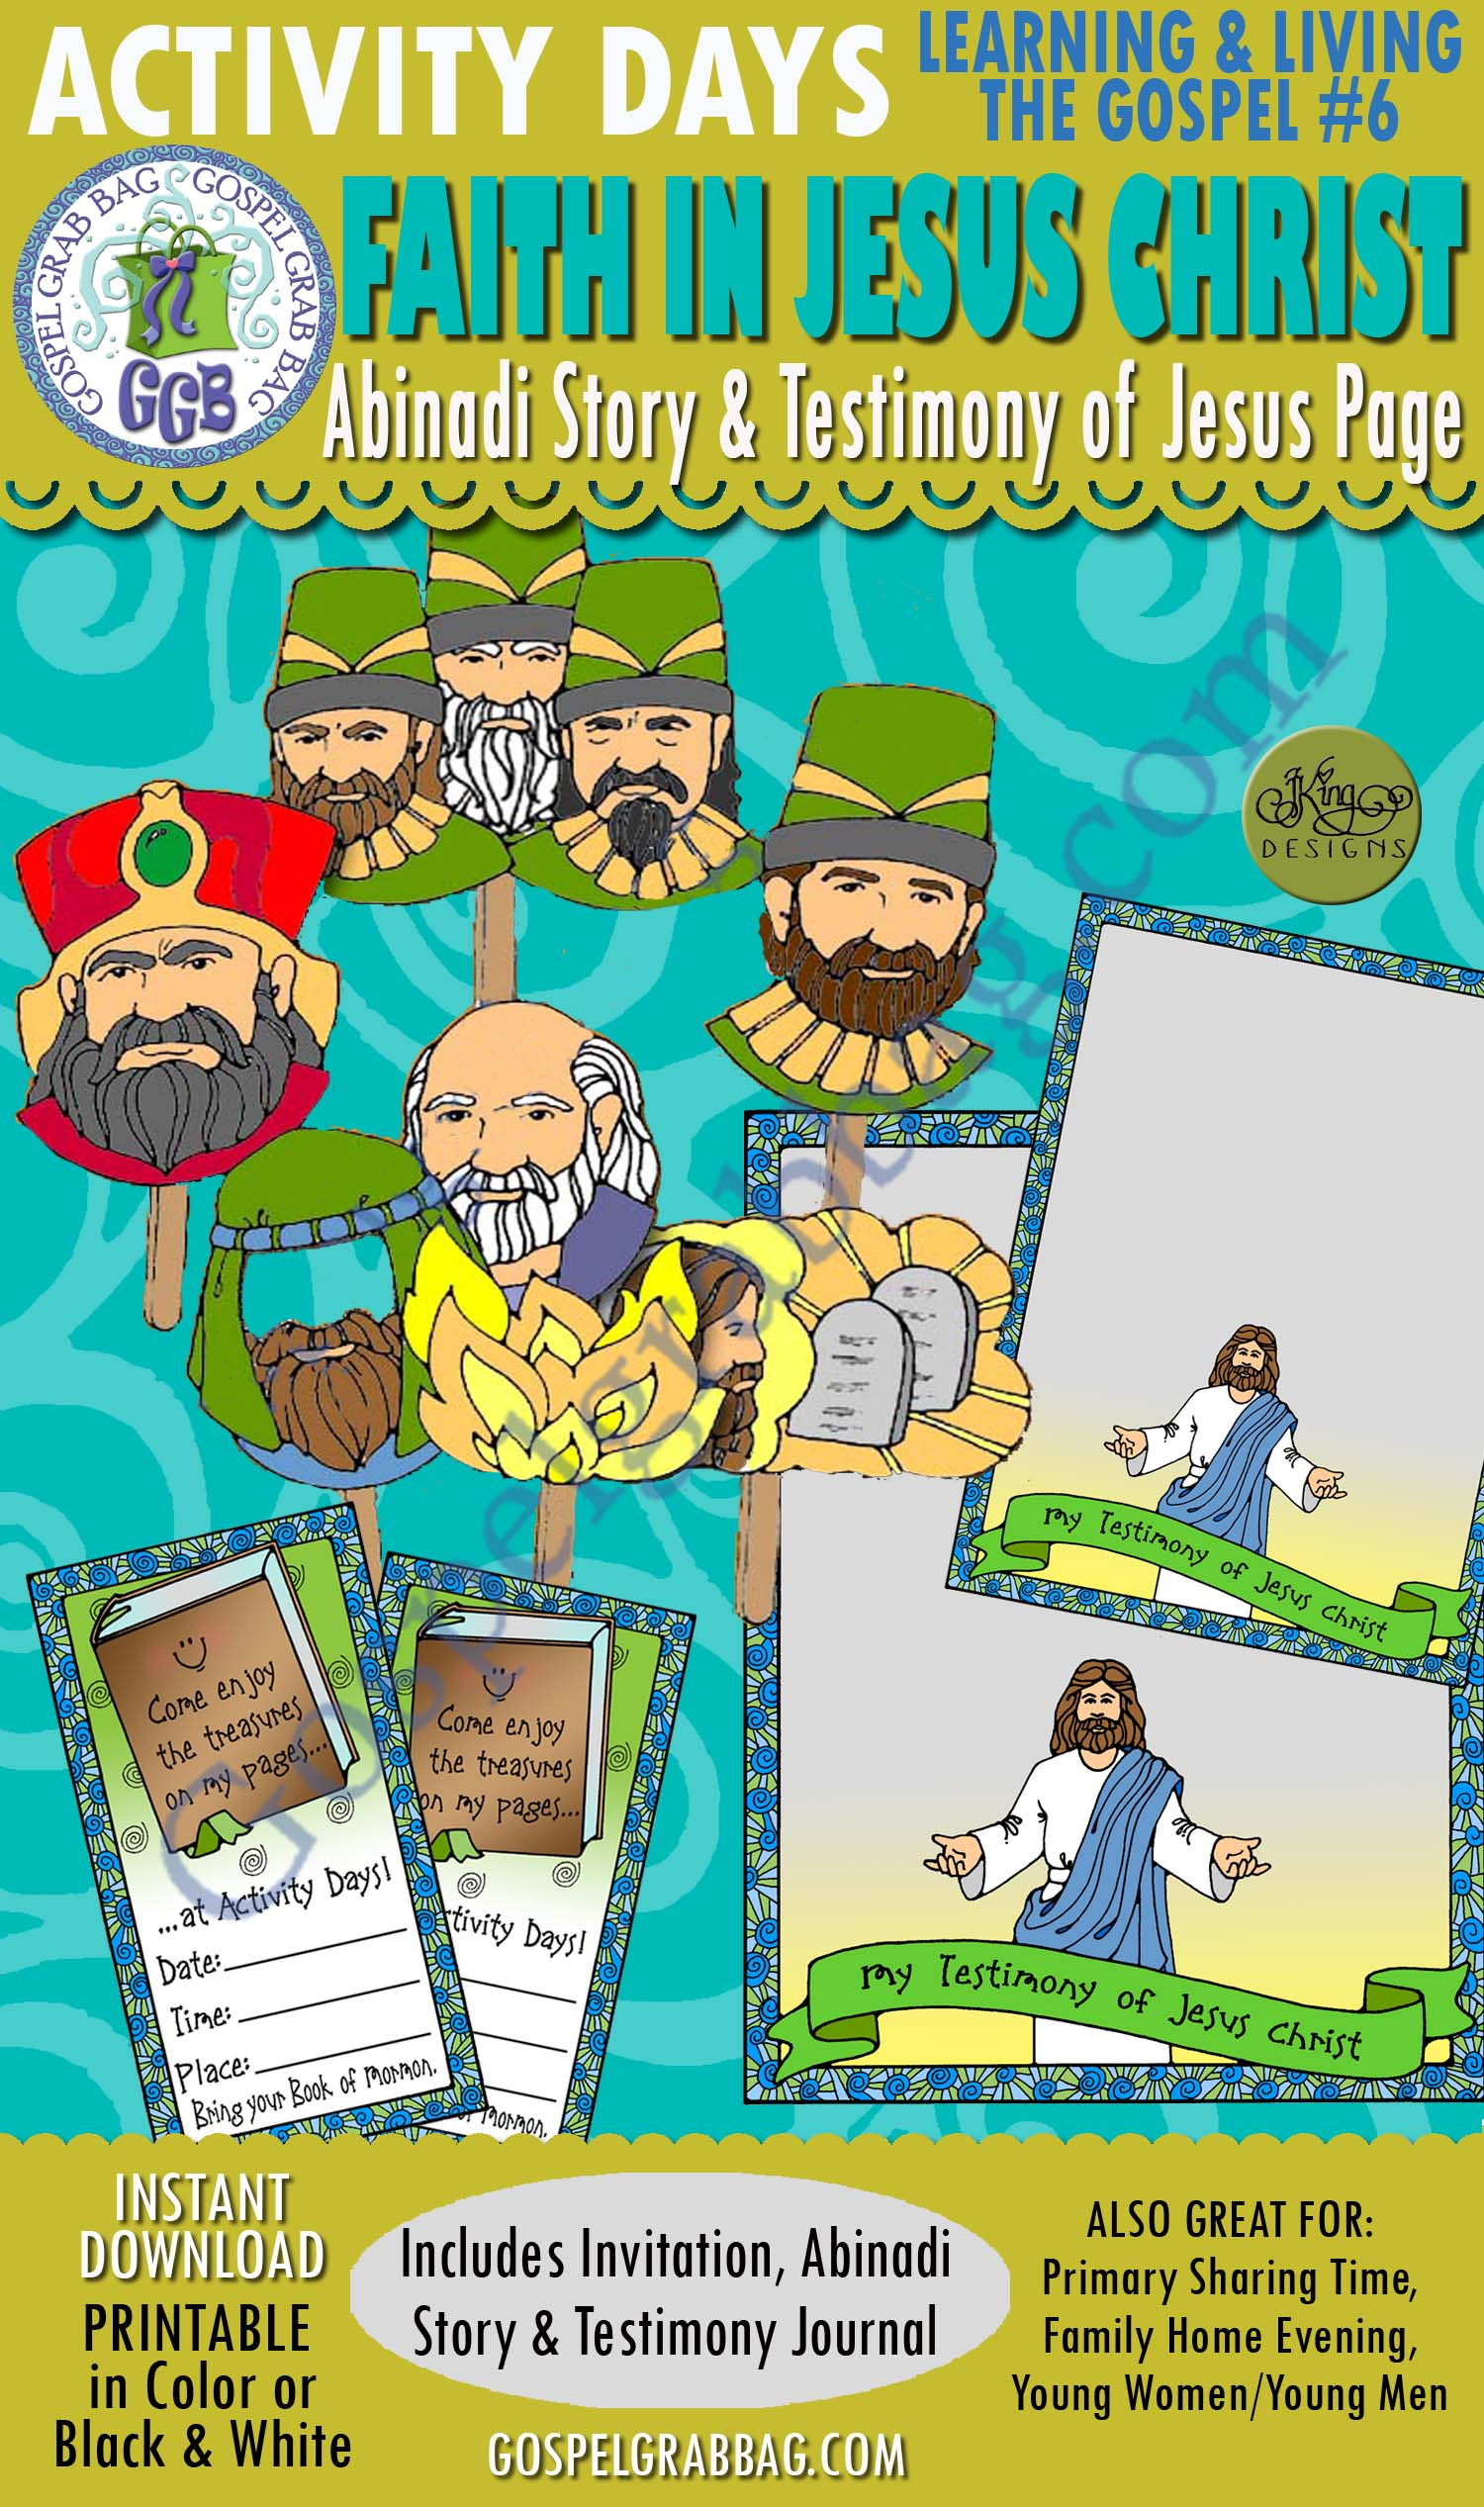 $3.75 BOOK OF MORMON Testimony of Jesus Christ: Activity Days: Learning and Living the Gospel, Goal 6 Invitation, Activity: Abinadi Warns Wicked King Noah puppet show, and Testimony of Jesus journal page, GospelGrabBag.com